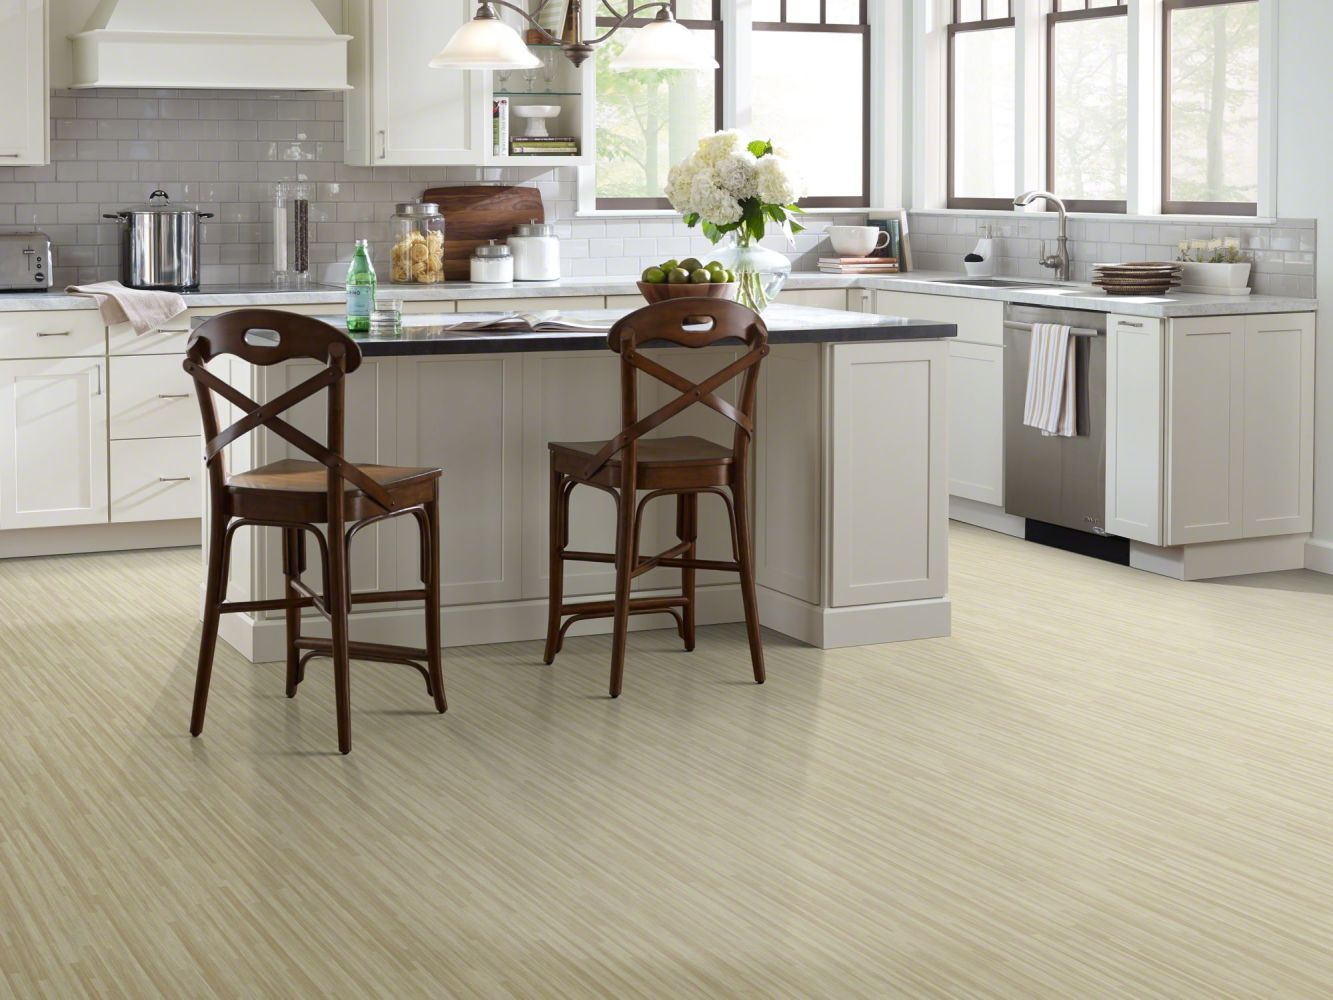 Shaw Floors Resilient Property Solutions Compact 12 Dalles 00135_VG061